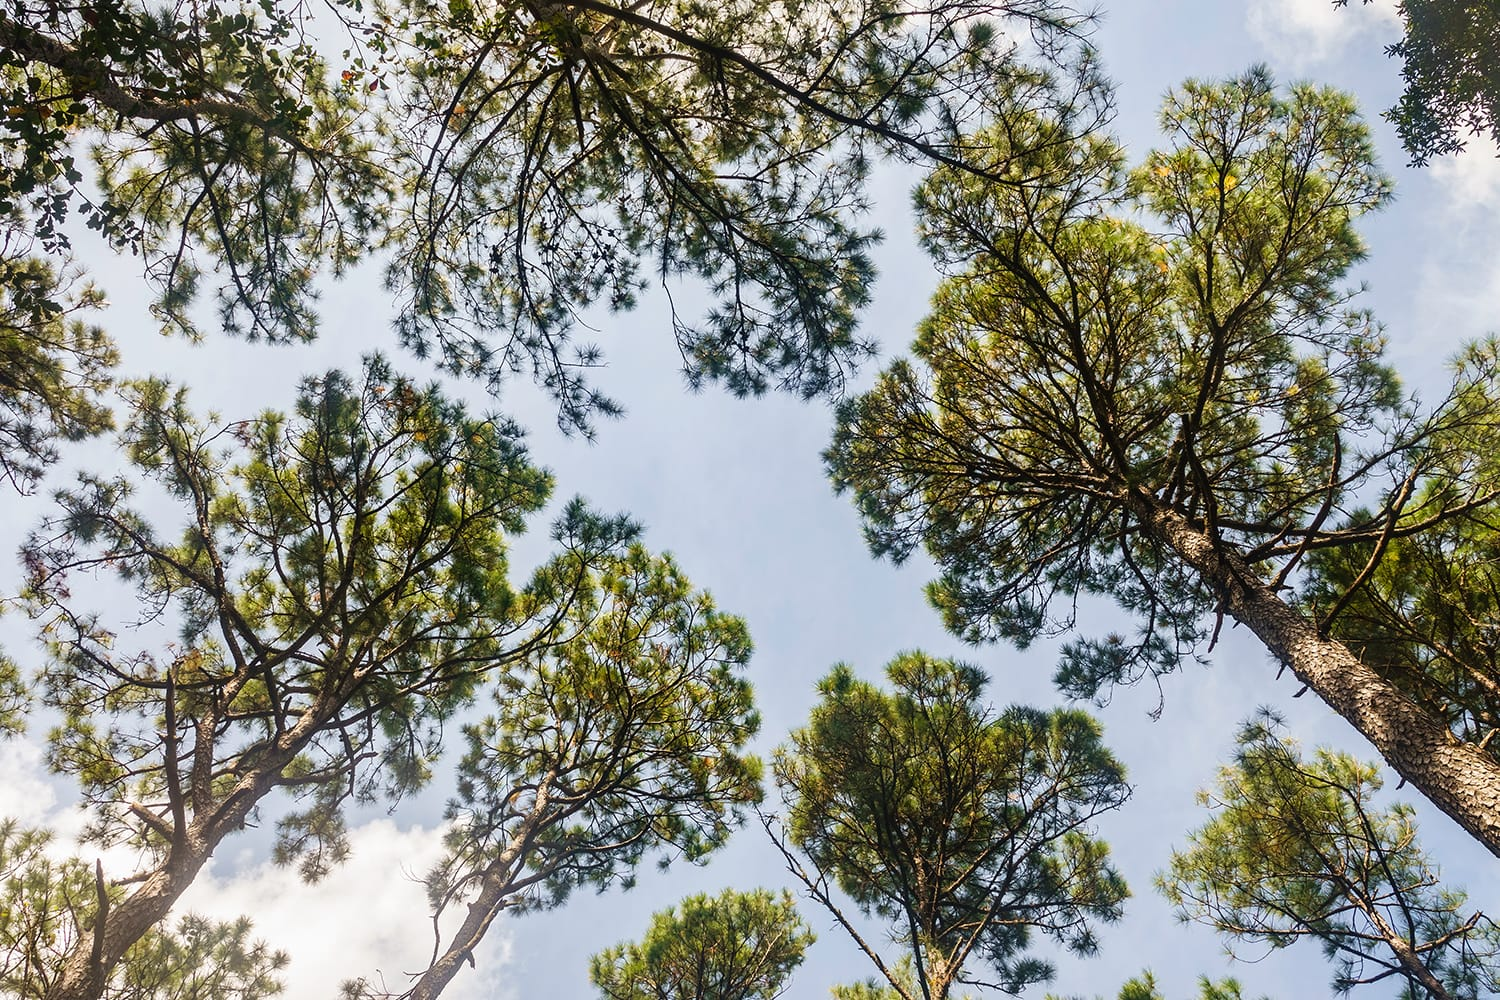 Canopy of tall longleaf pine trees (binomial name: Pinus palustris) at the Jacksonville Arboretum and Gardens in Florida, USA